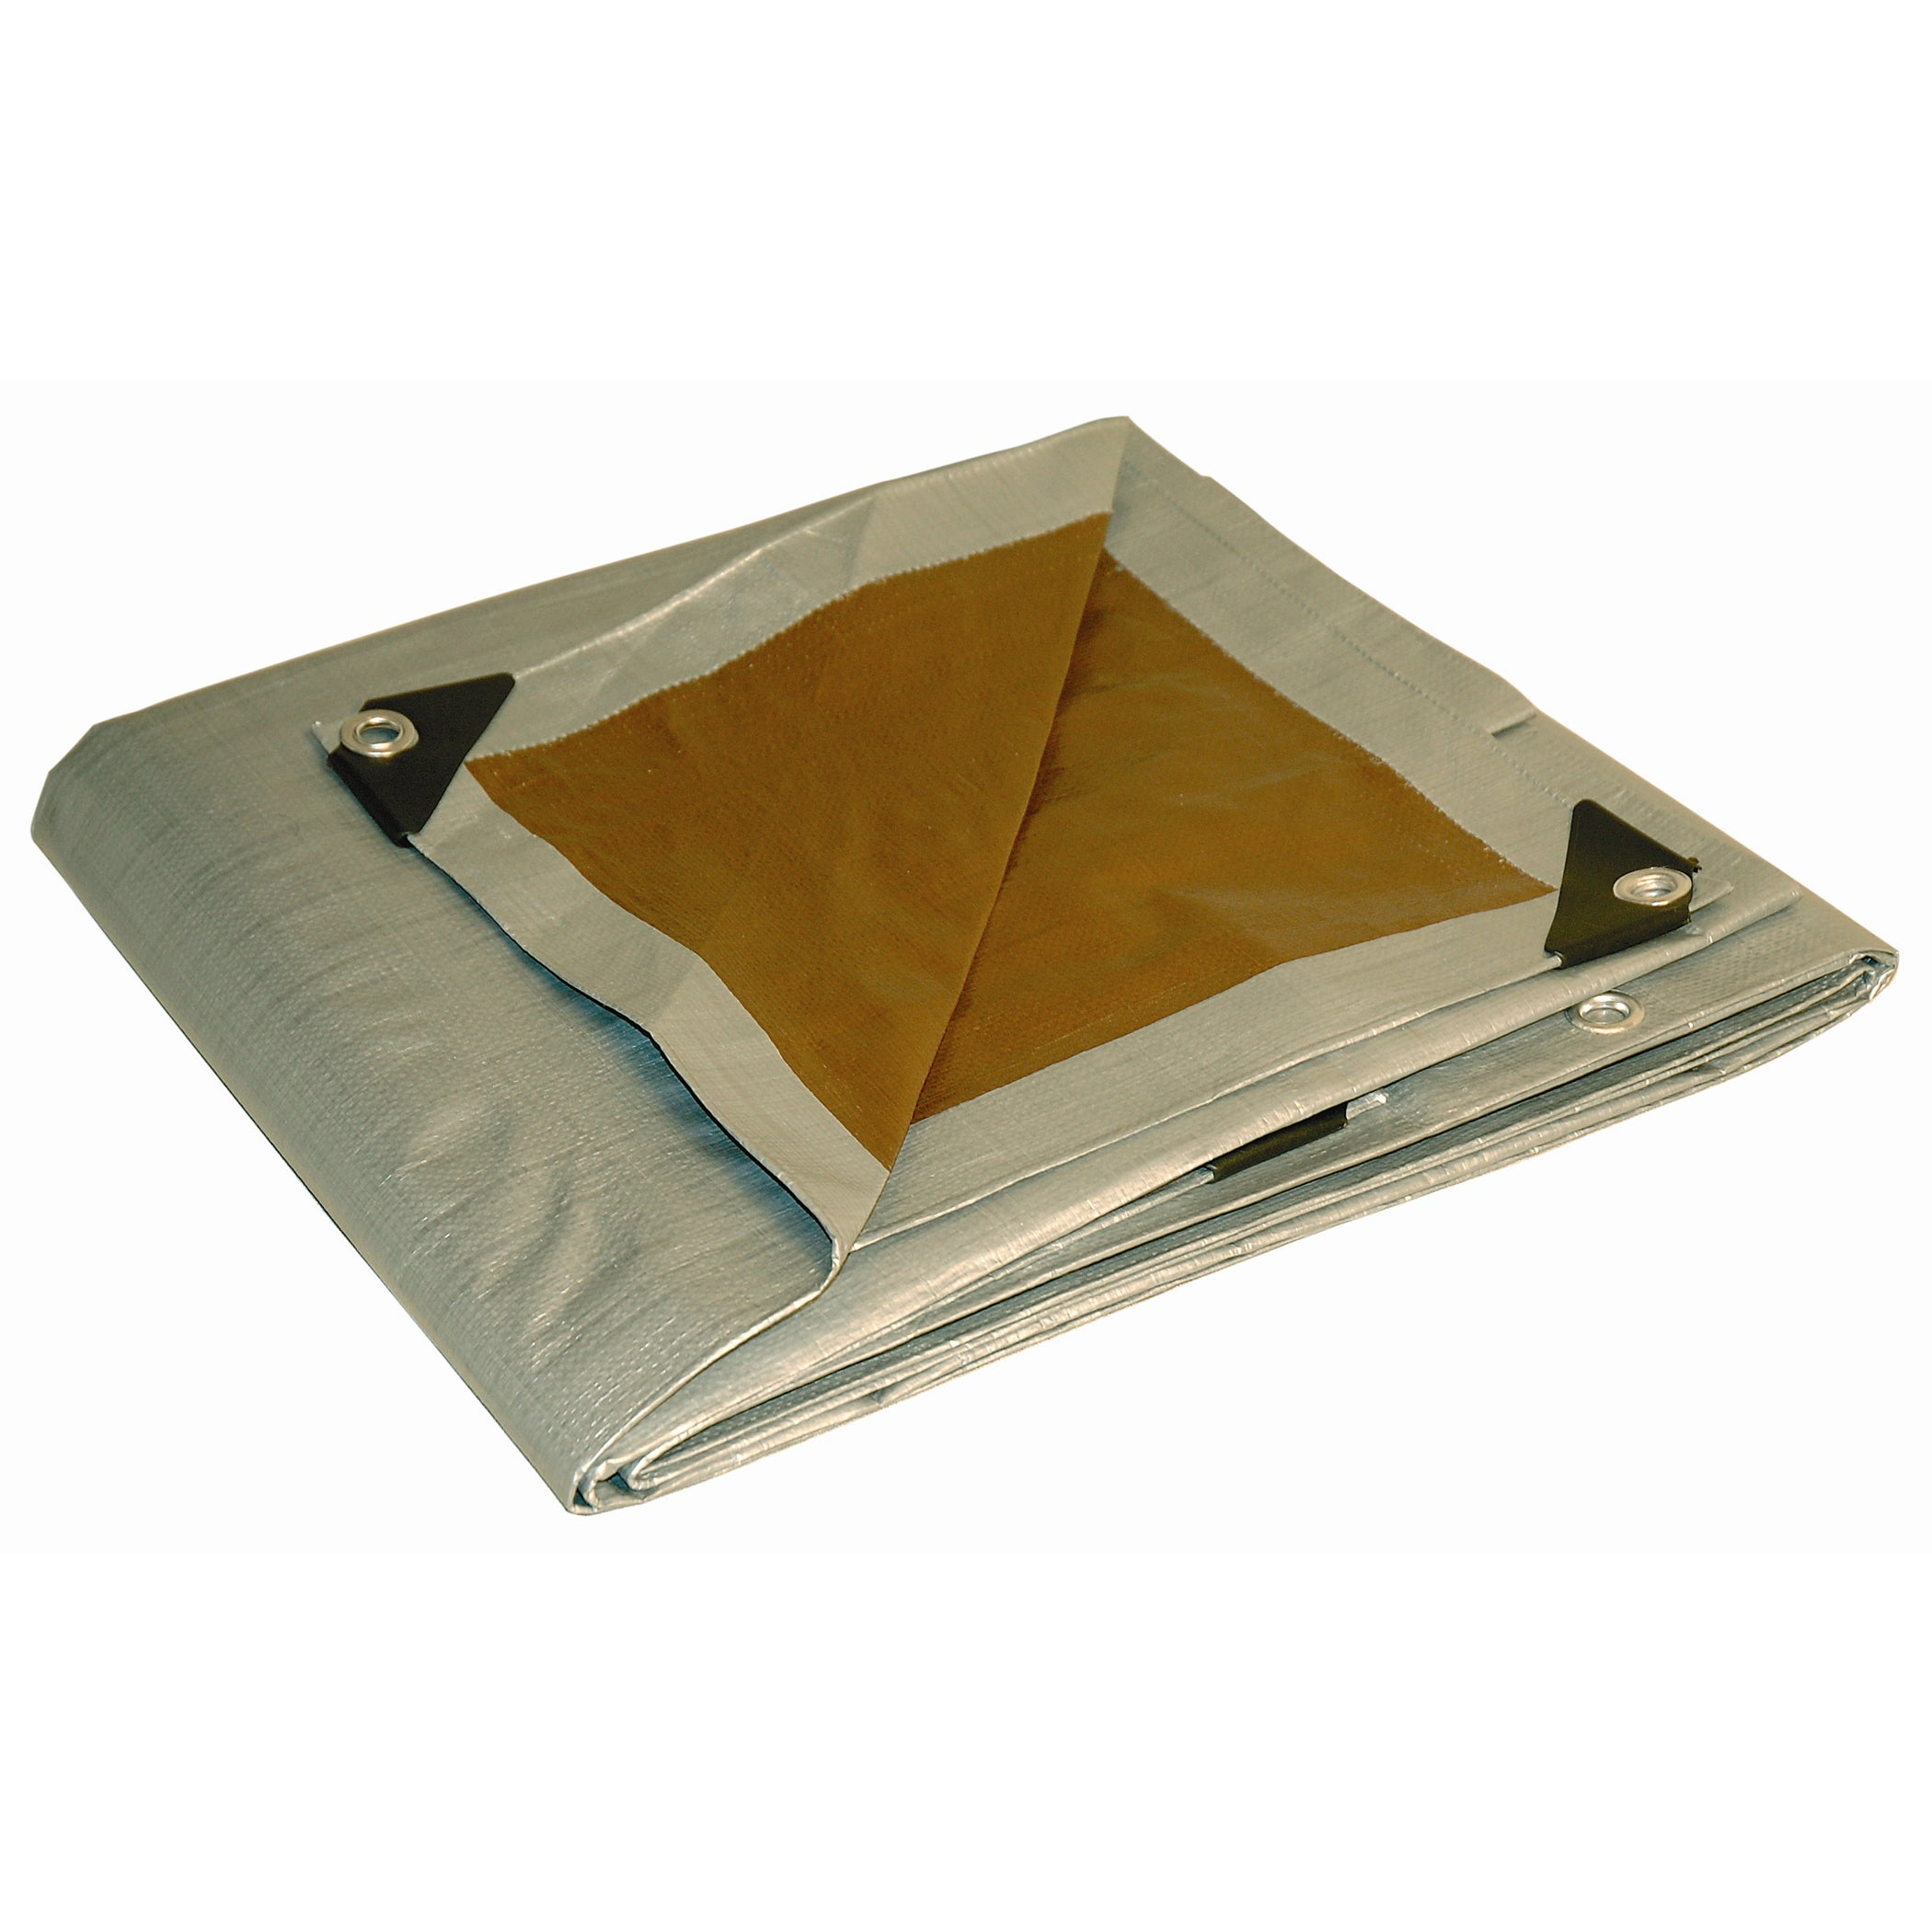 Foremost Dry Top Tarp Silver Brown 22030 20' X 30' Revers...